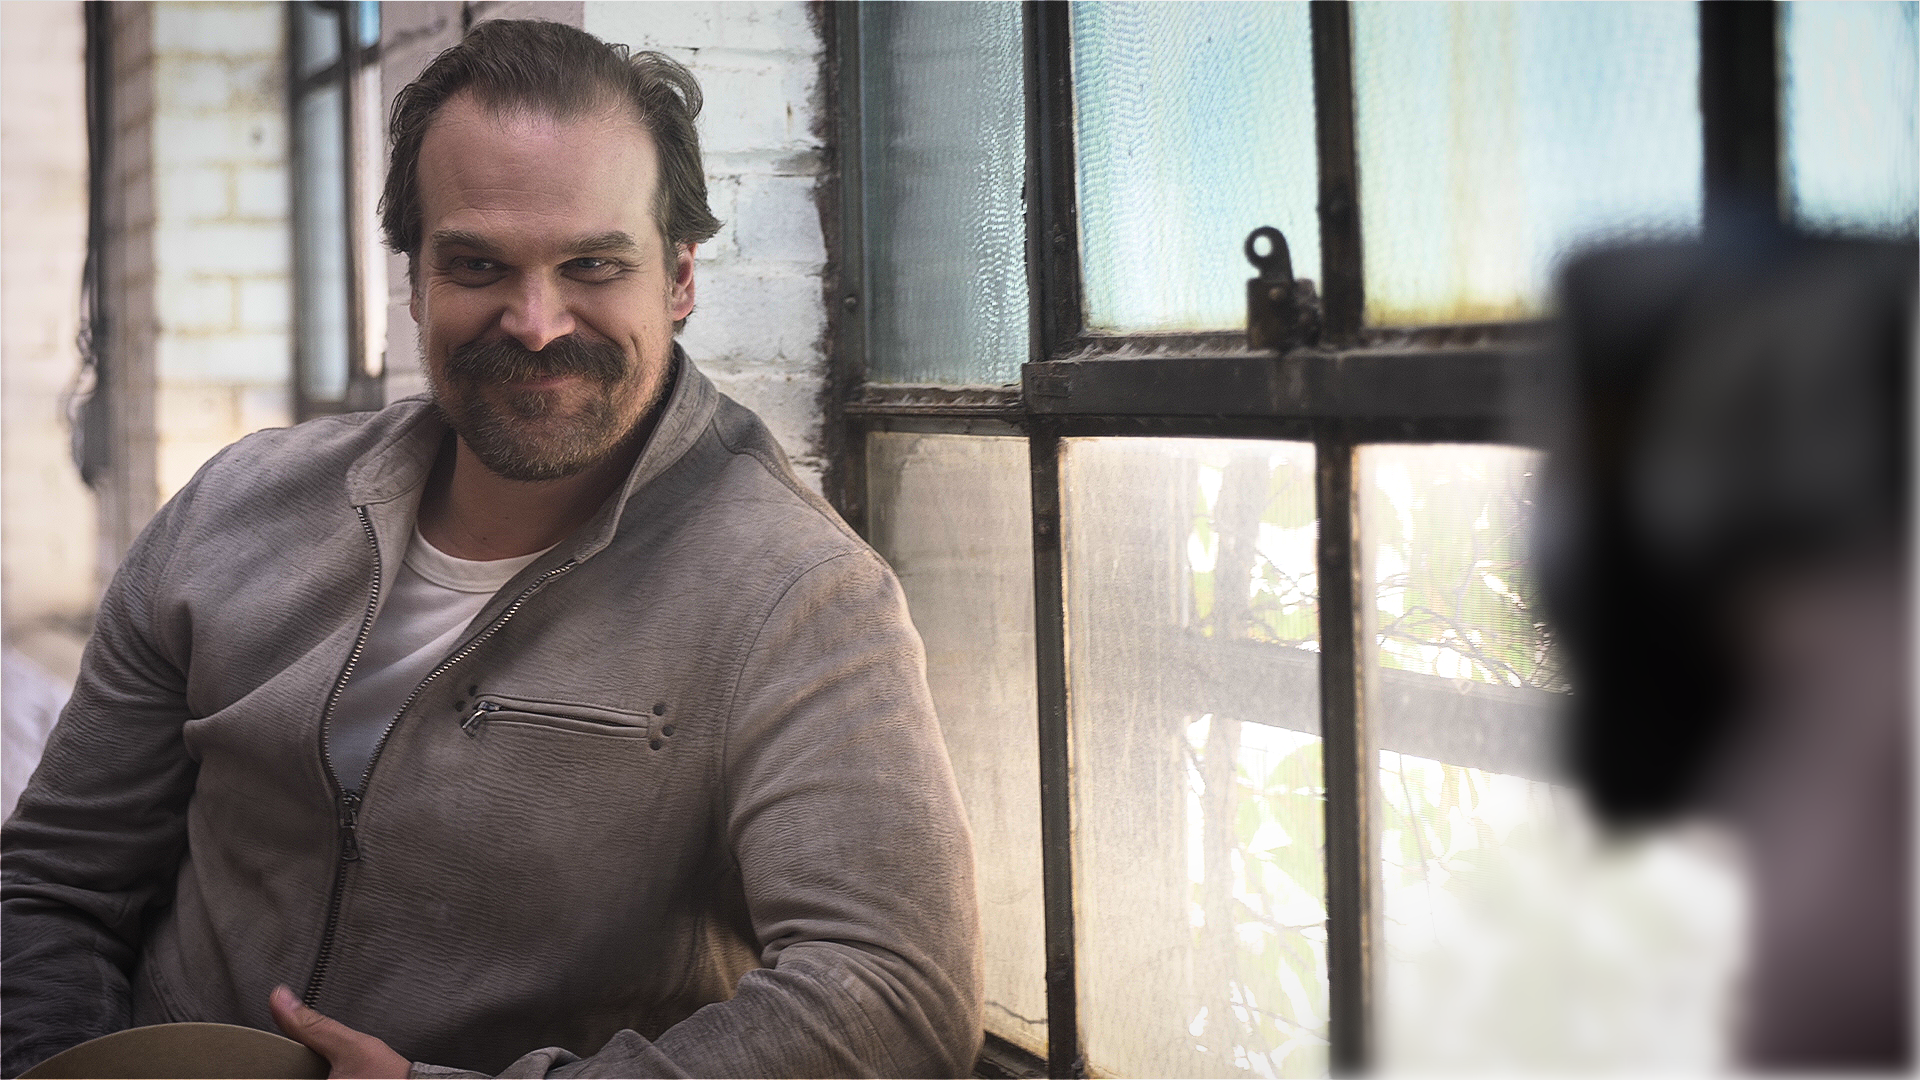 Video: David Harbour shows he's not afraid to have a good laugh